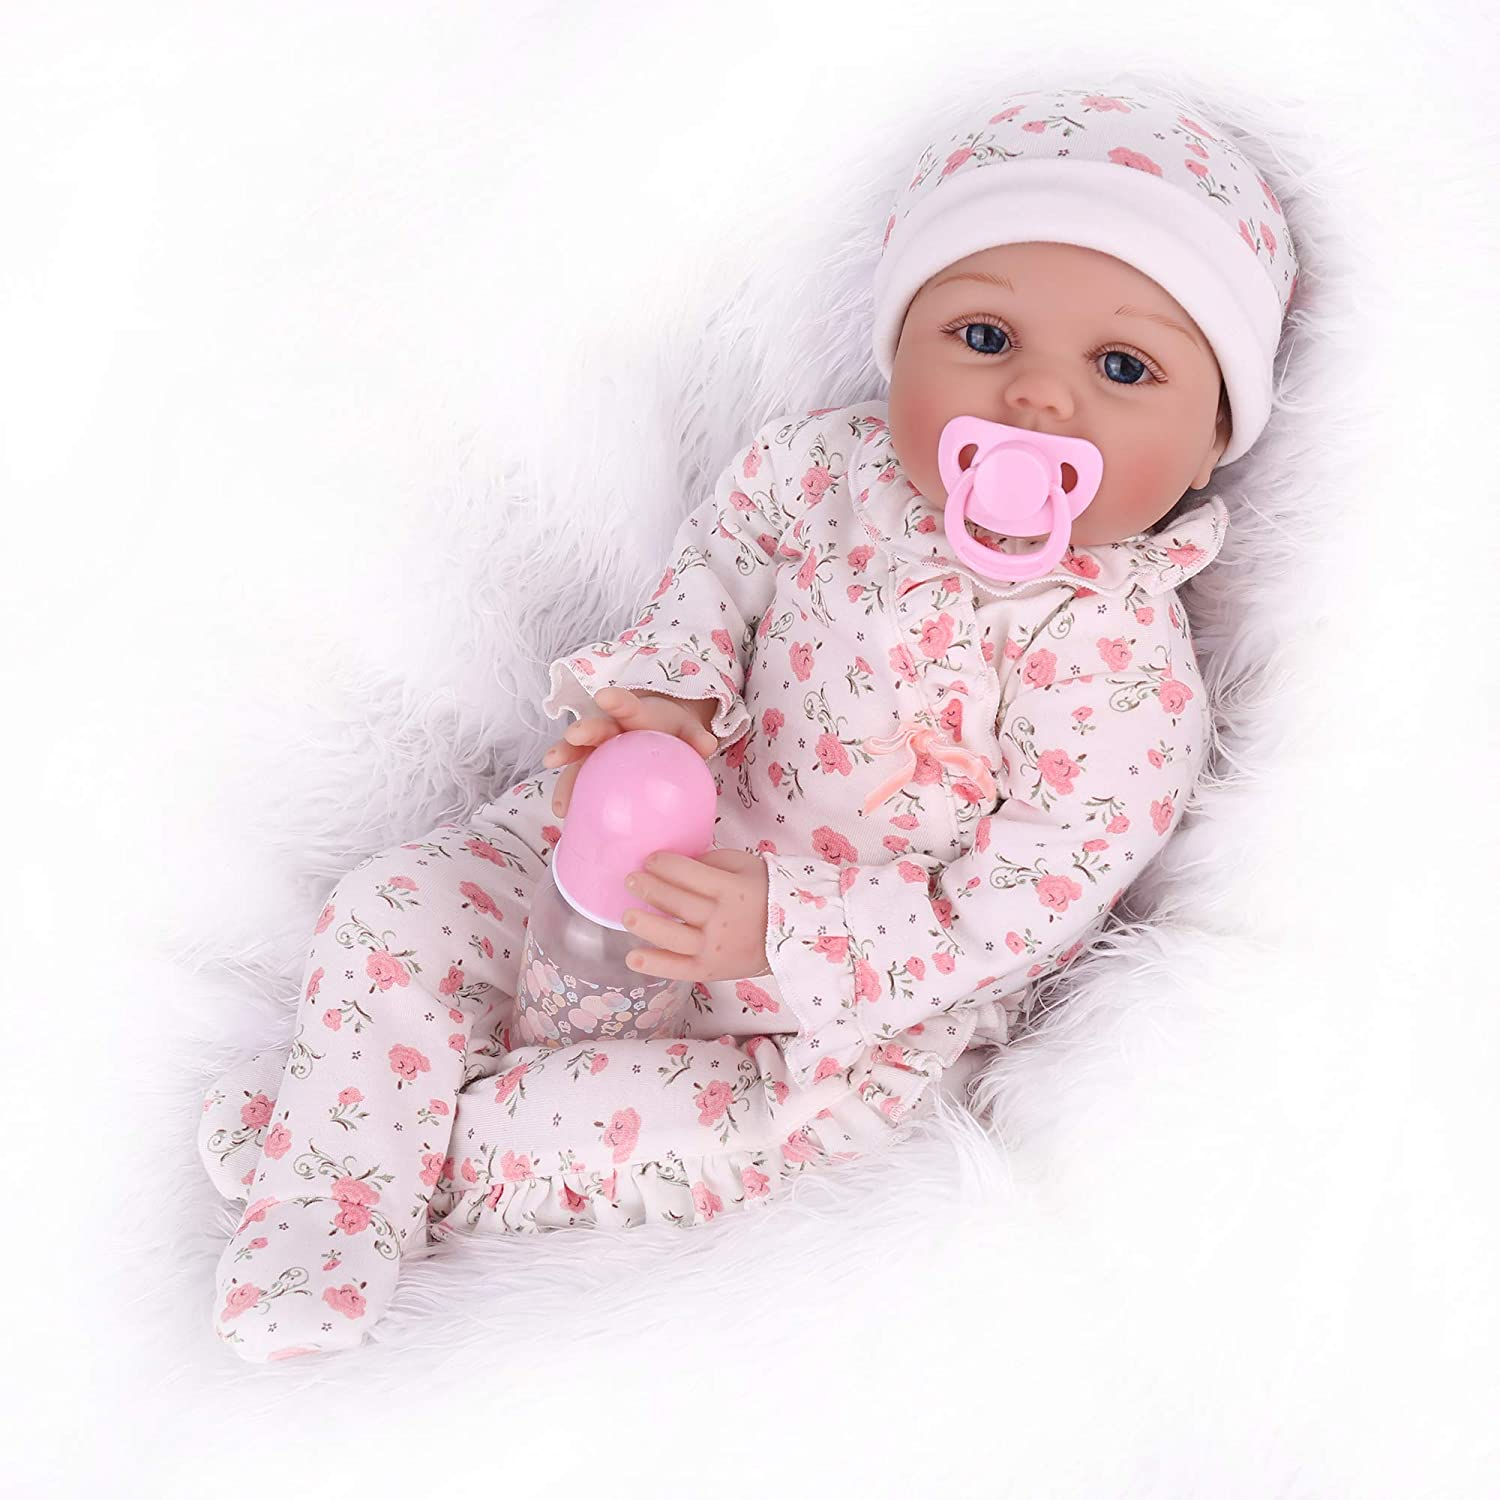 CHAREX 22 Inch Reborn Baby Dolls Lifelike Weighted Baby Reborn Dolls Girl Handmade Adorable Real Baby Dolls for Age 3+